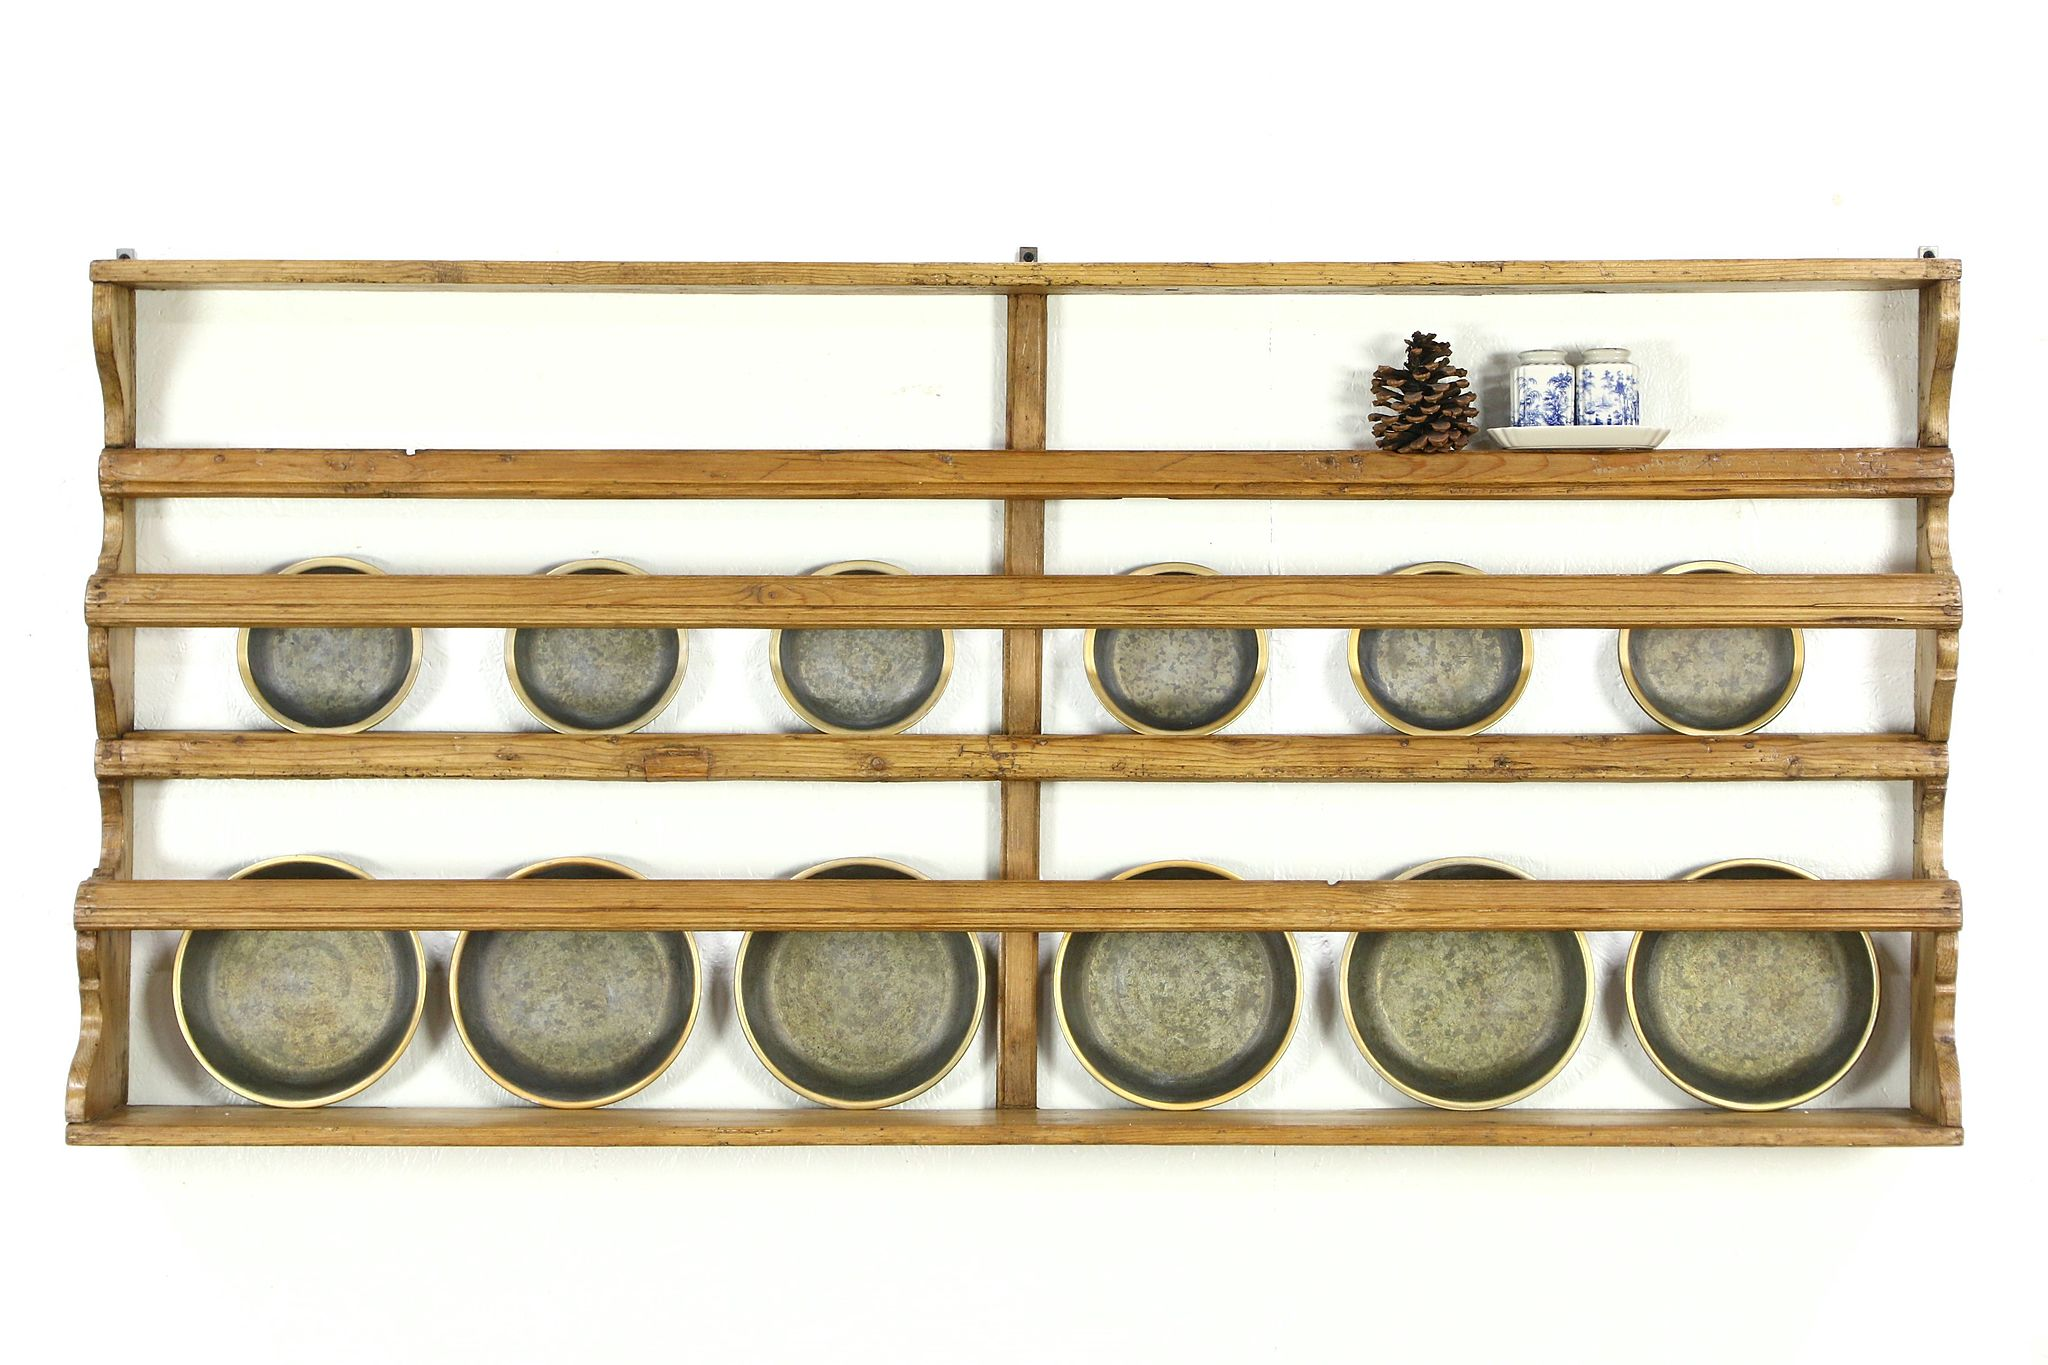 Country Pine Irish Antique 1840 Wall Plate Rack or Pewter Shelf  sc 1 st  Harp Gallery Antique Furniture & SOLD - Country Pine Irish Antique 1840 Wall Plate Rack or Pewter ...